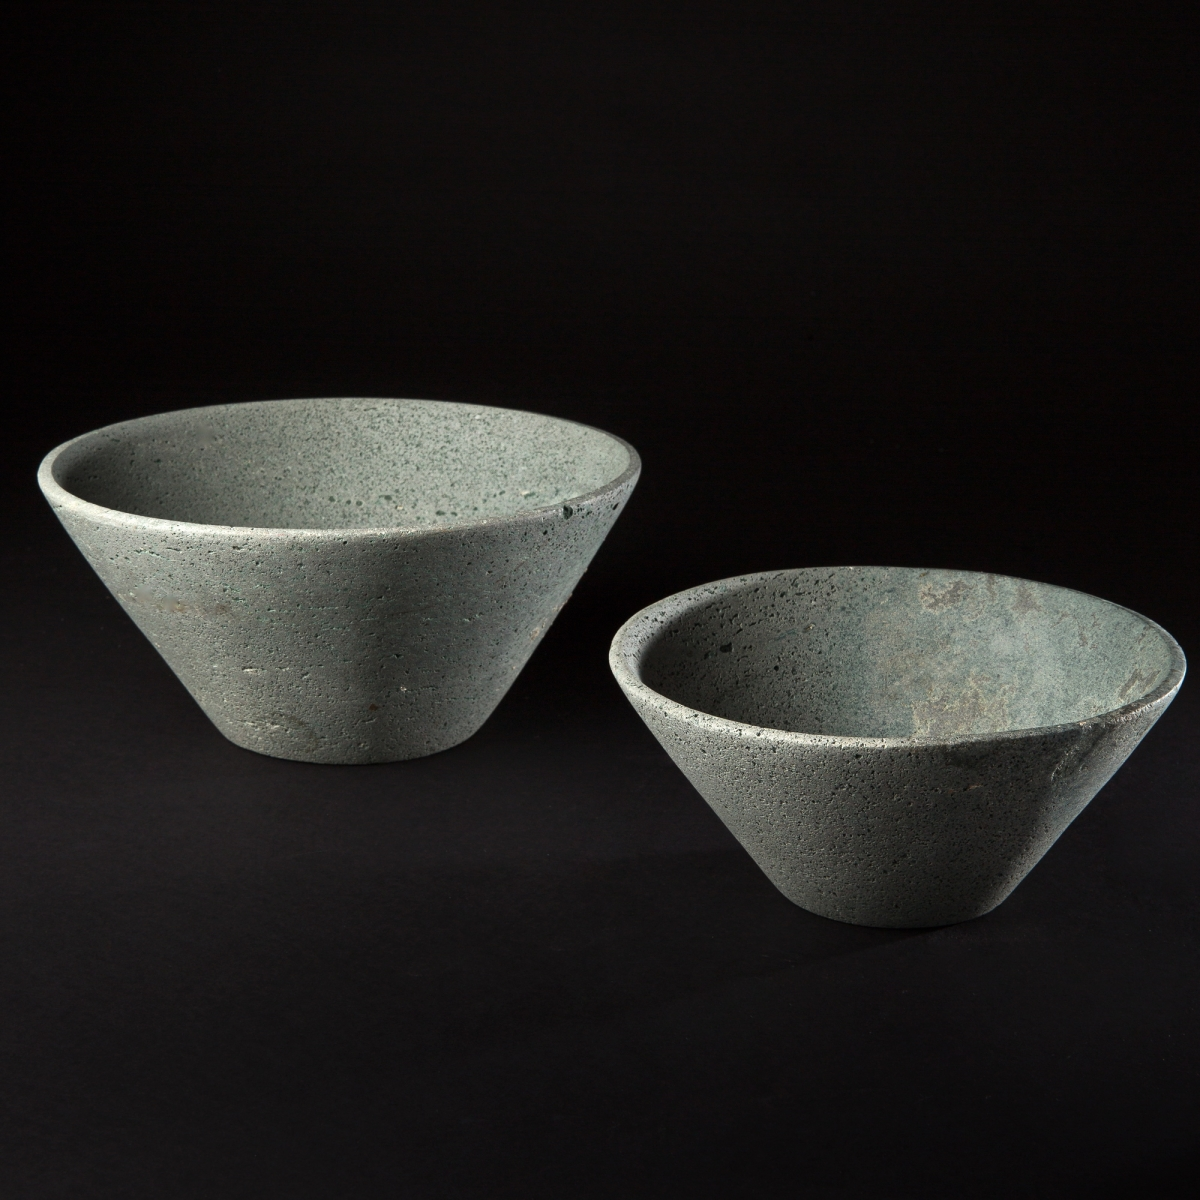 Photo of VERY RARE PAIR OF MESOPOTAMIAN BASALT BOWLS